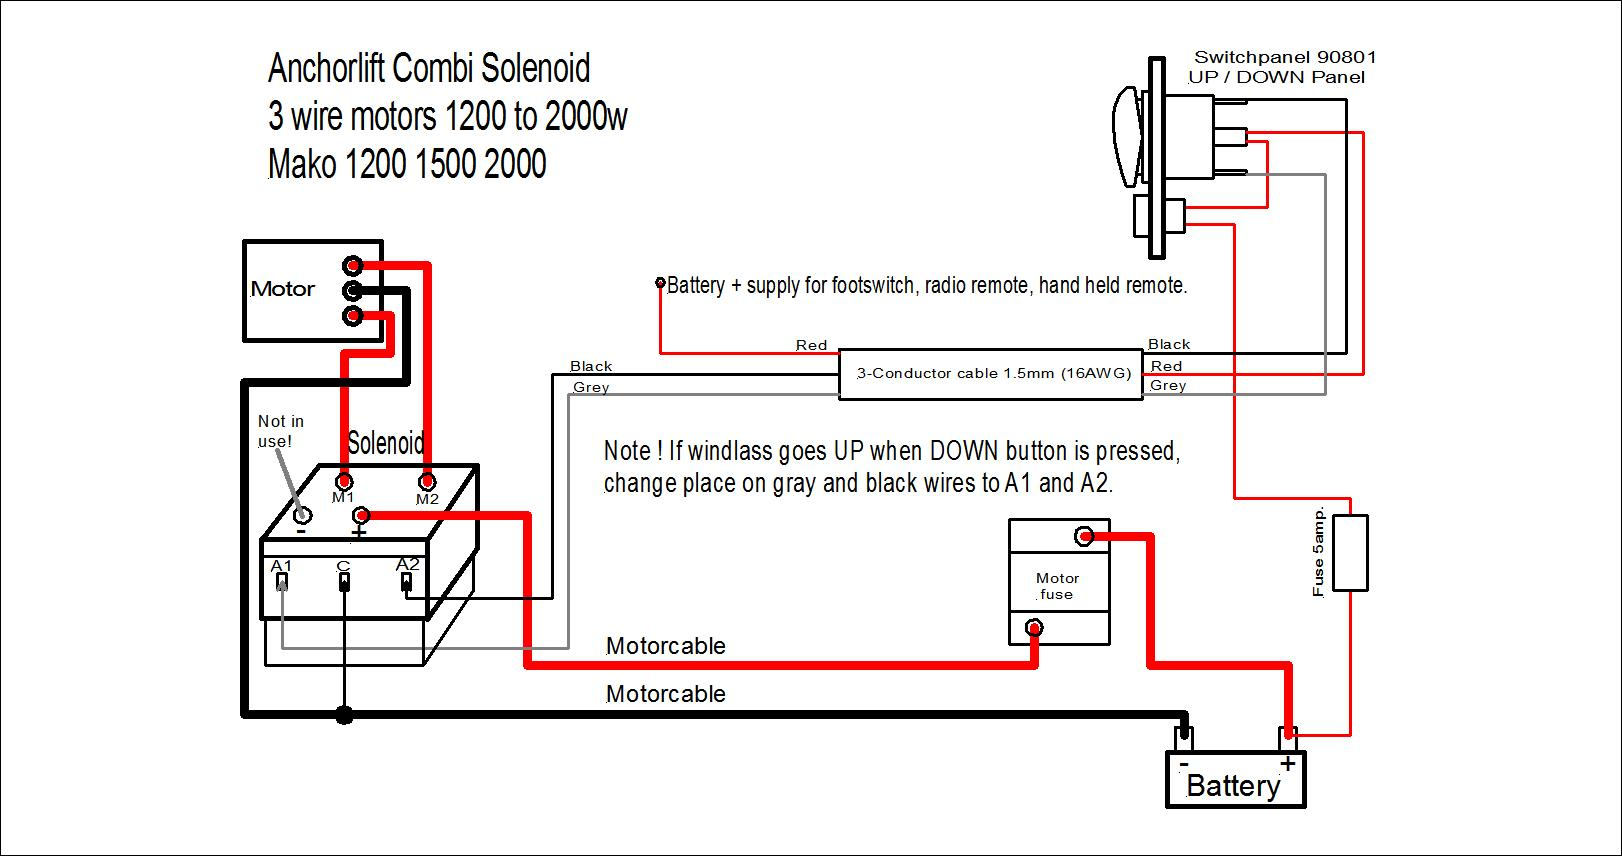 Wiring%203%20cabel%20motor%20new%20solenoid  Amp Solenoid Wiring Diagram on panel meter base, generac transfer switch, automatic transfer switch, electrical panel,